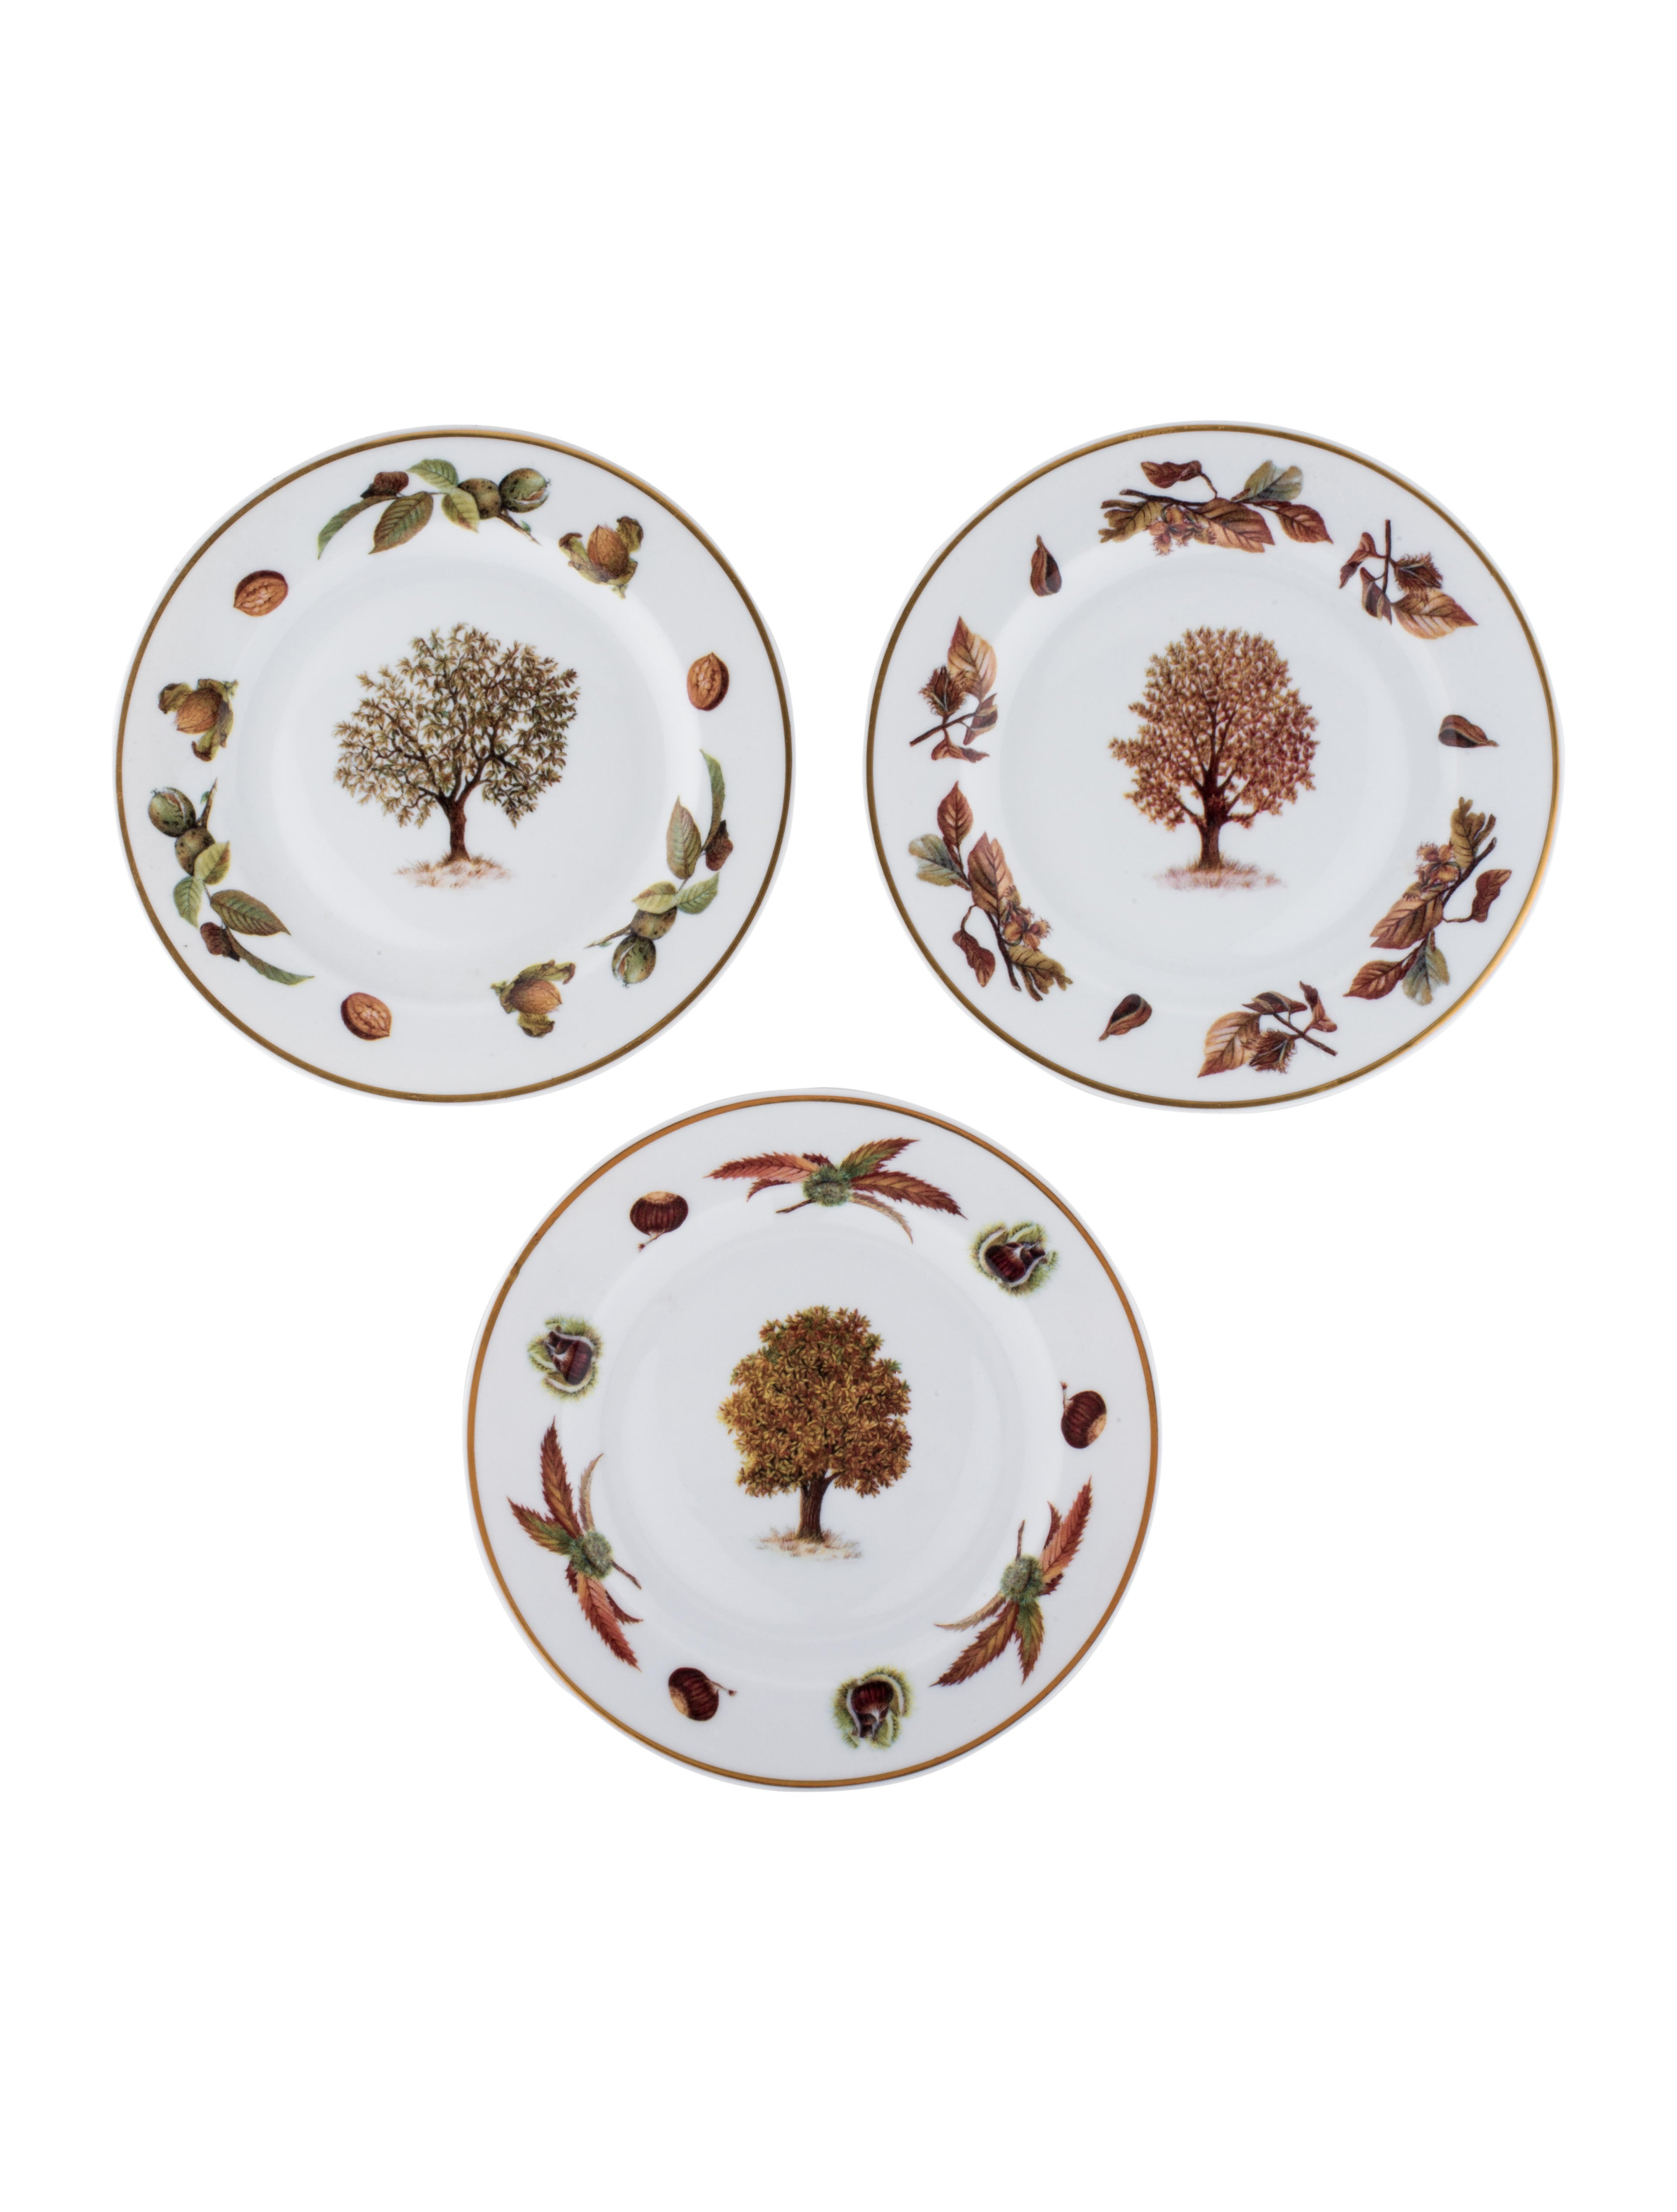 Decorative Plates Plate Set Tabletop And Kitchen Plate20002 The Realreal